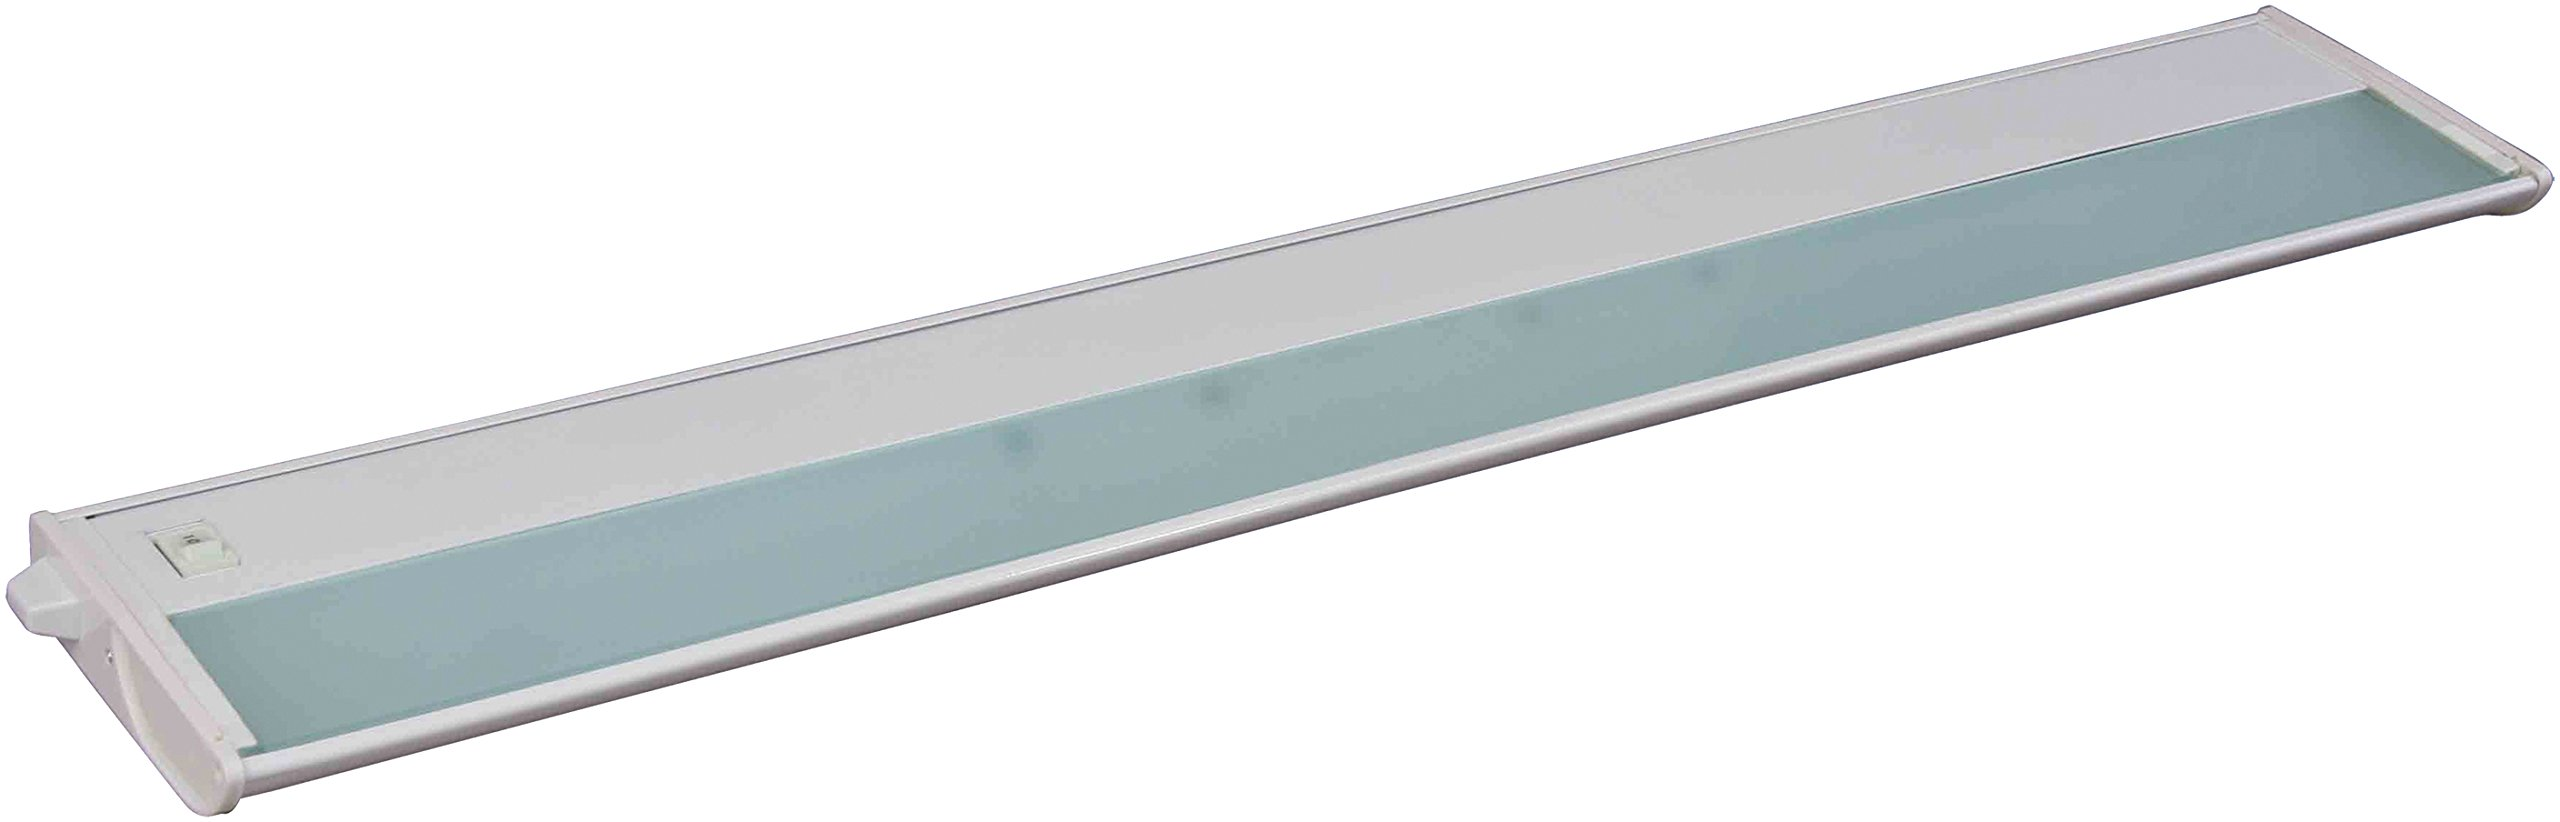 Maxim 87843WT CounterMax MX-X120c 30'' 4-Light 120V Xenon, White Finish, Glass, G8 Xenon Xenon Bulb , 12W Max., Wet Safety Rating, 3000K Color Temp, ELV Dimmable, Glass Shade Material, 840 Rated Lumens